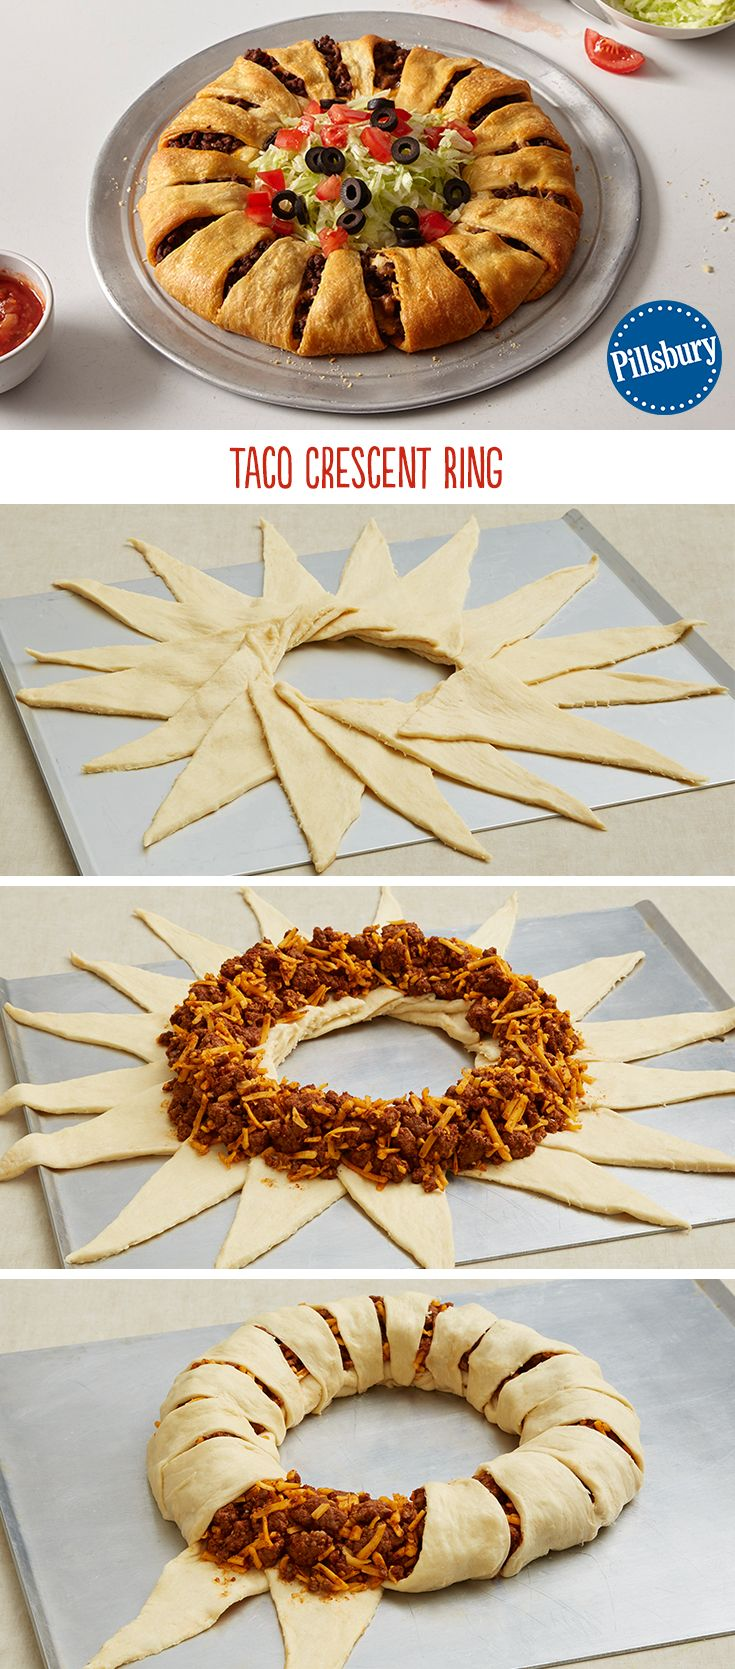 An easy alternative to regular tacos: Taco Crescent Ring!  A really simple and delicious weekday dinner for the family. Prepare with your favorite yummy taco additions like lettuce, tomatoes, olives, onions and salsa!